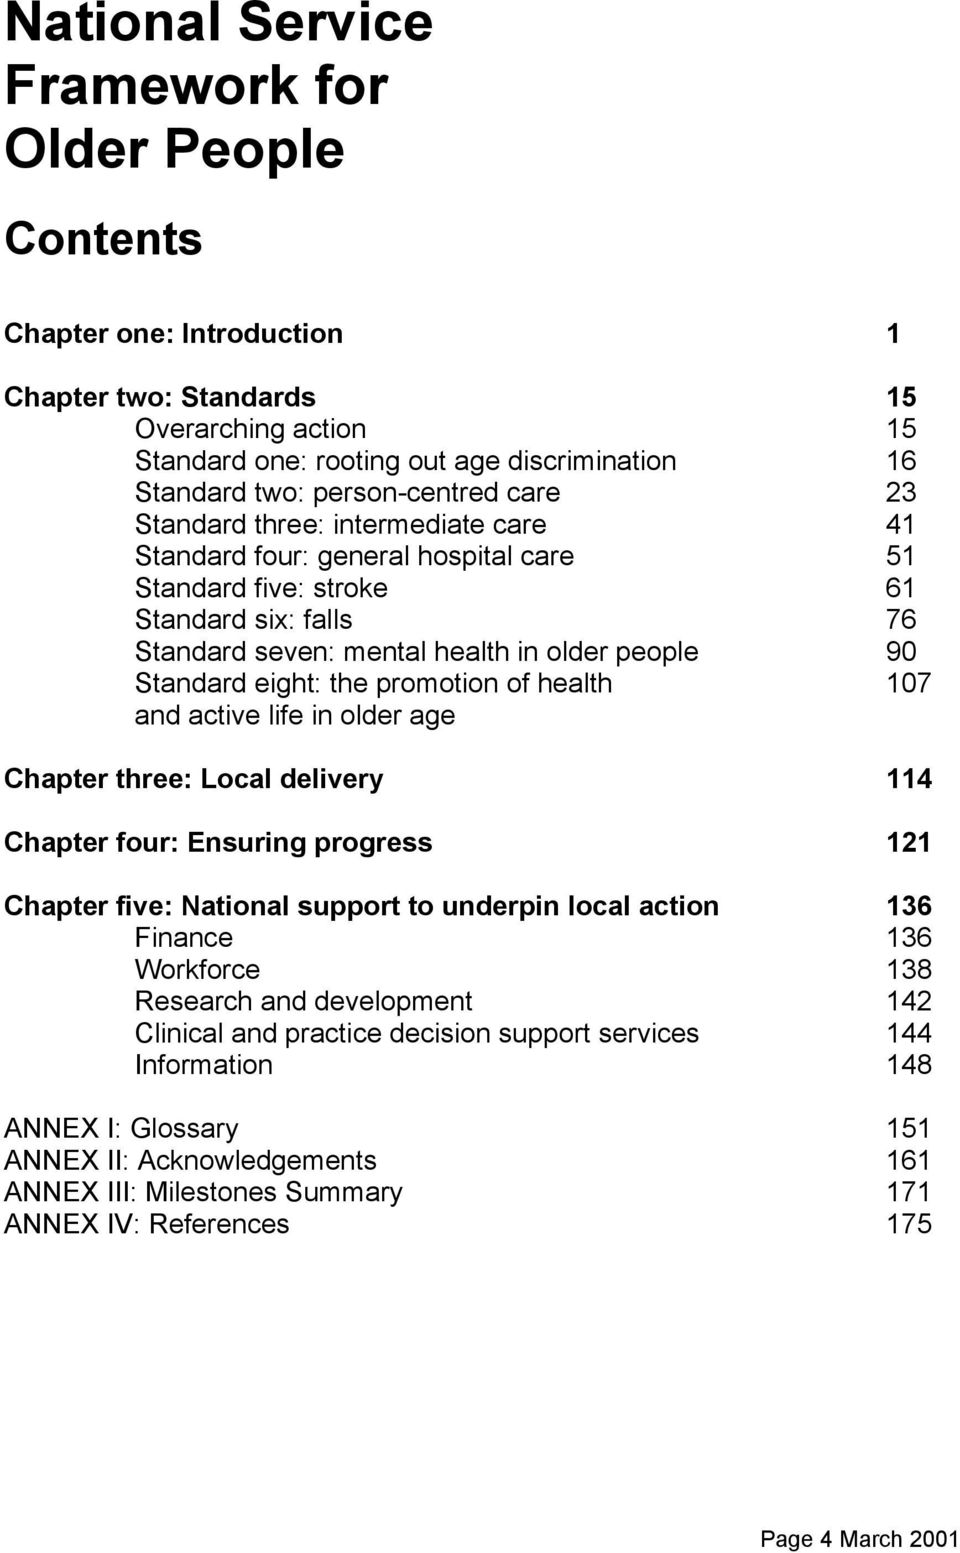 Standard eight: the promotion of health 107 and active life in older age Chapter three: Local delivery 114 Chapter four: Ensuring progress 121 Chapter five: National support to underpin local action